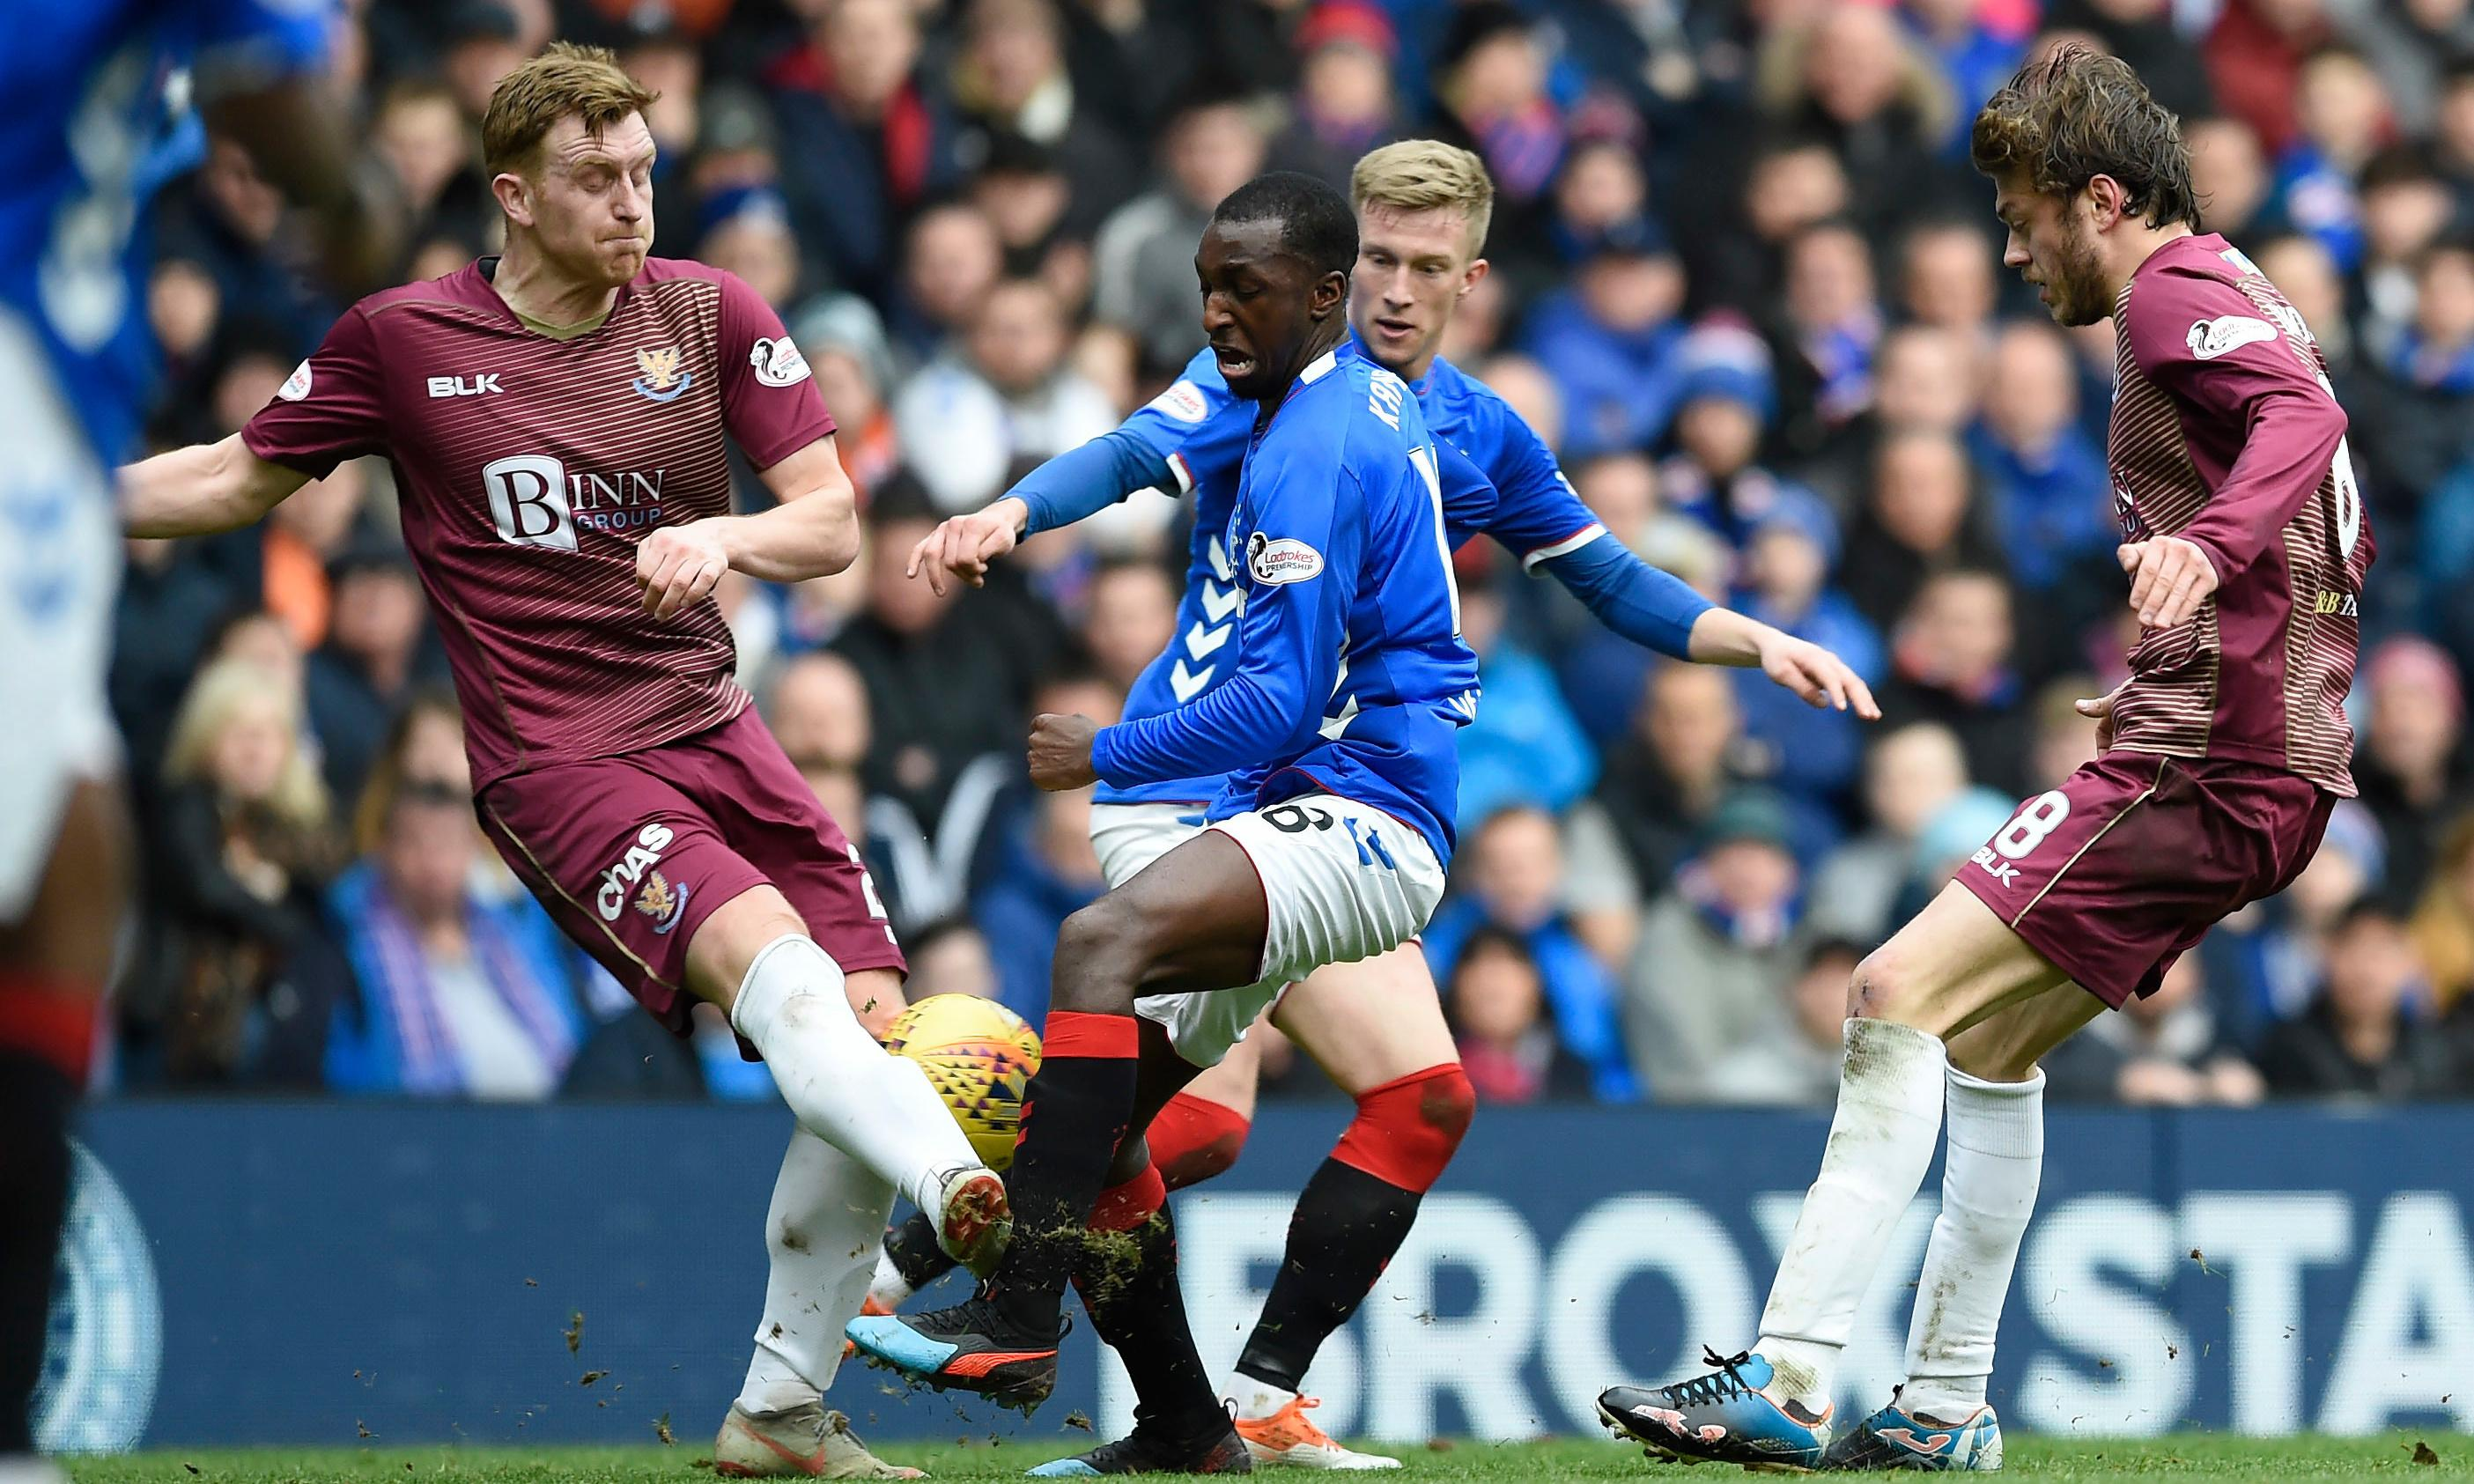 Blunt Rangers lose ground on Celtic after St Johnstone stalemate